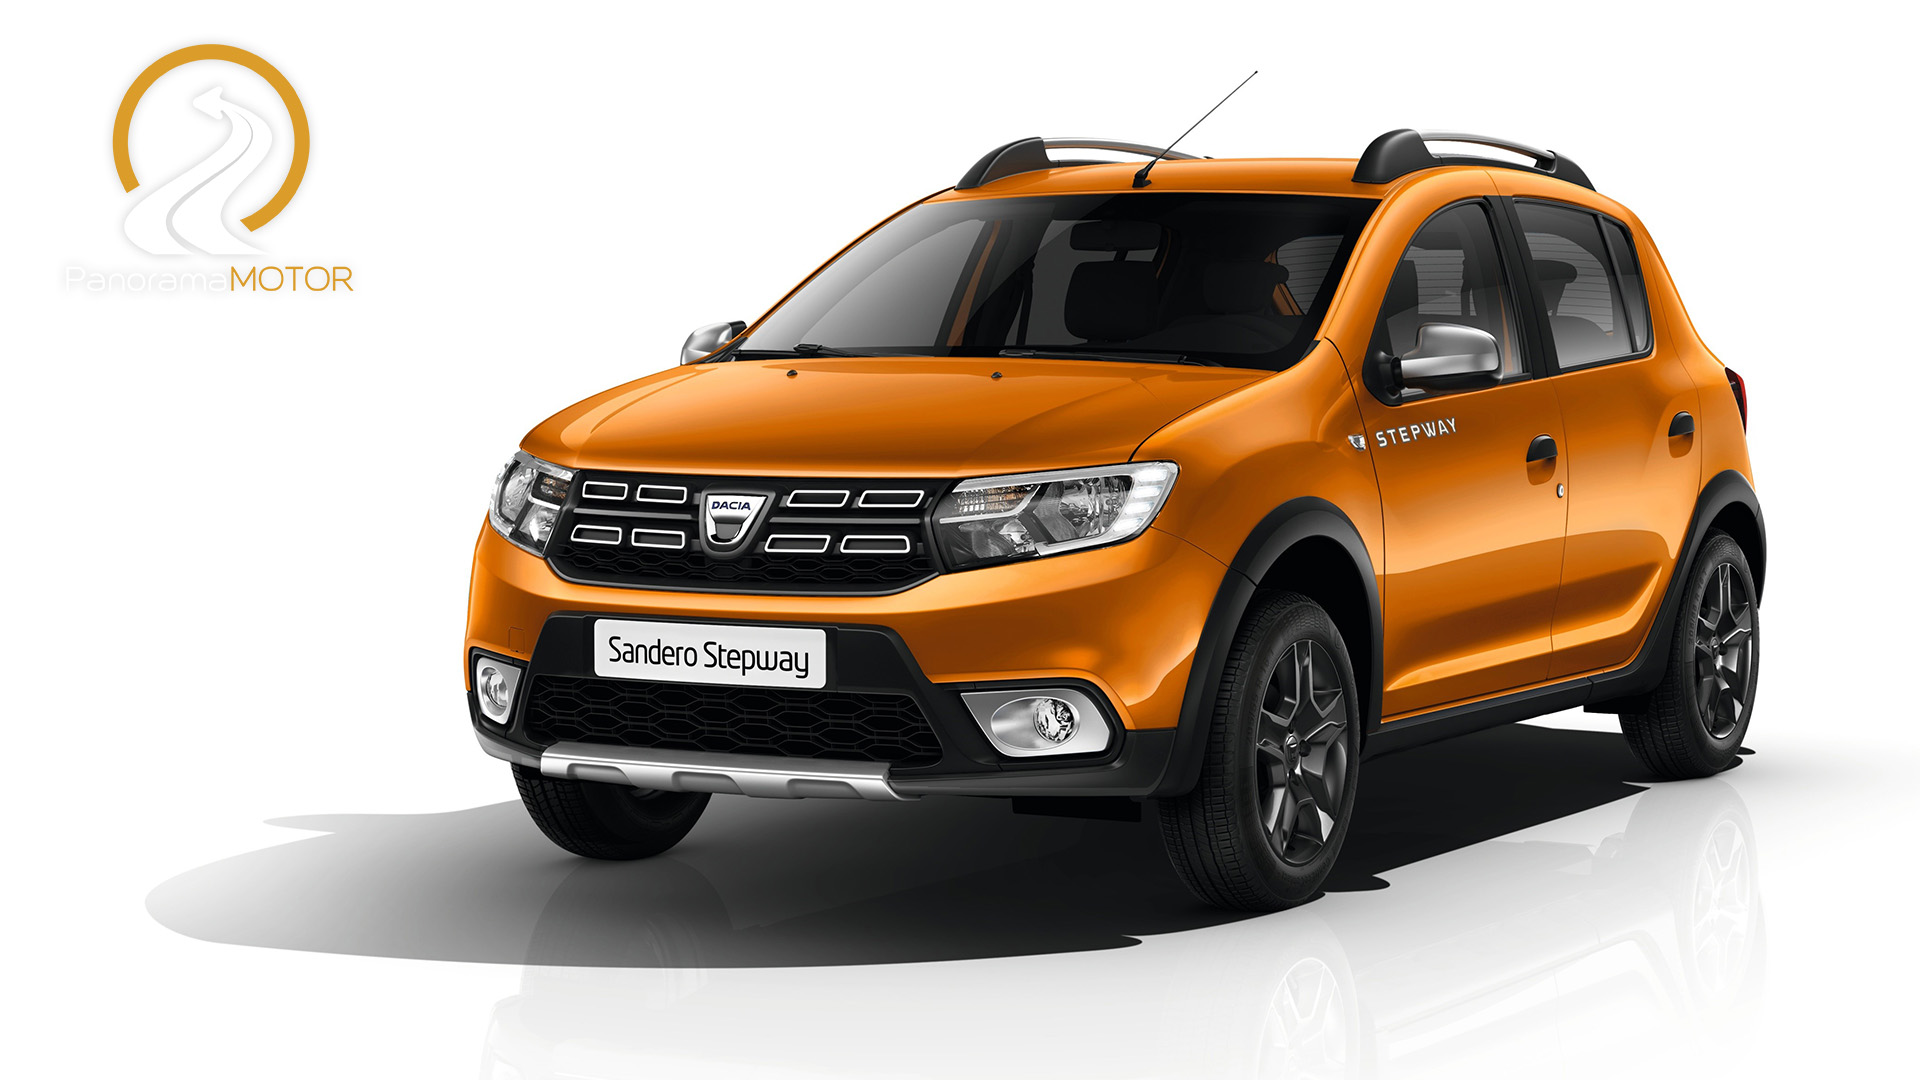 dacia sandero stepway 2017 panorama motor. Black Bedroom Furniture Sets. Home Design Ideas